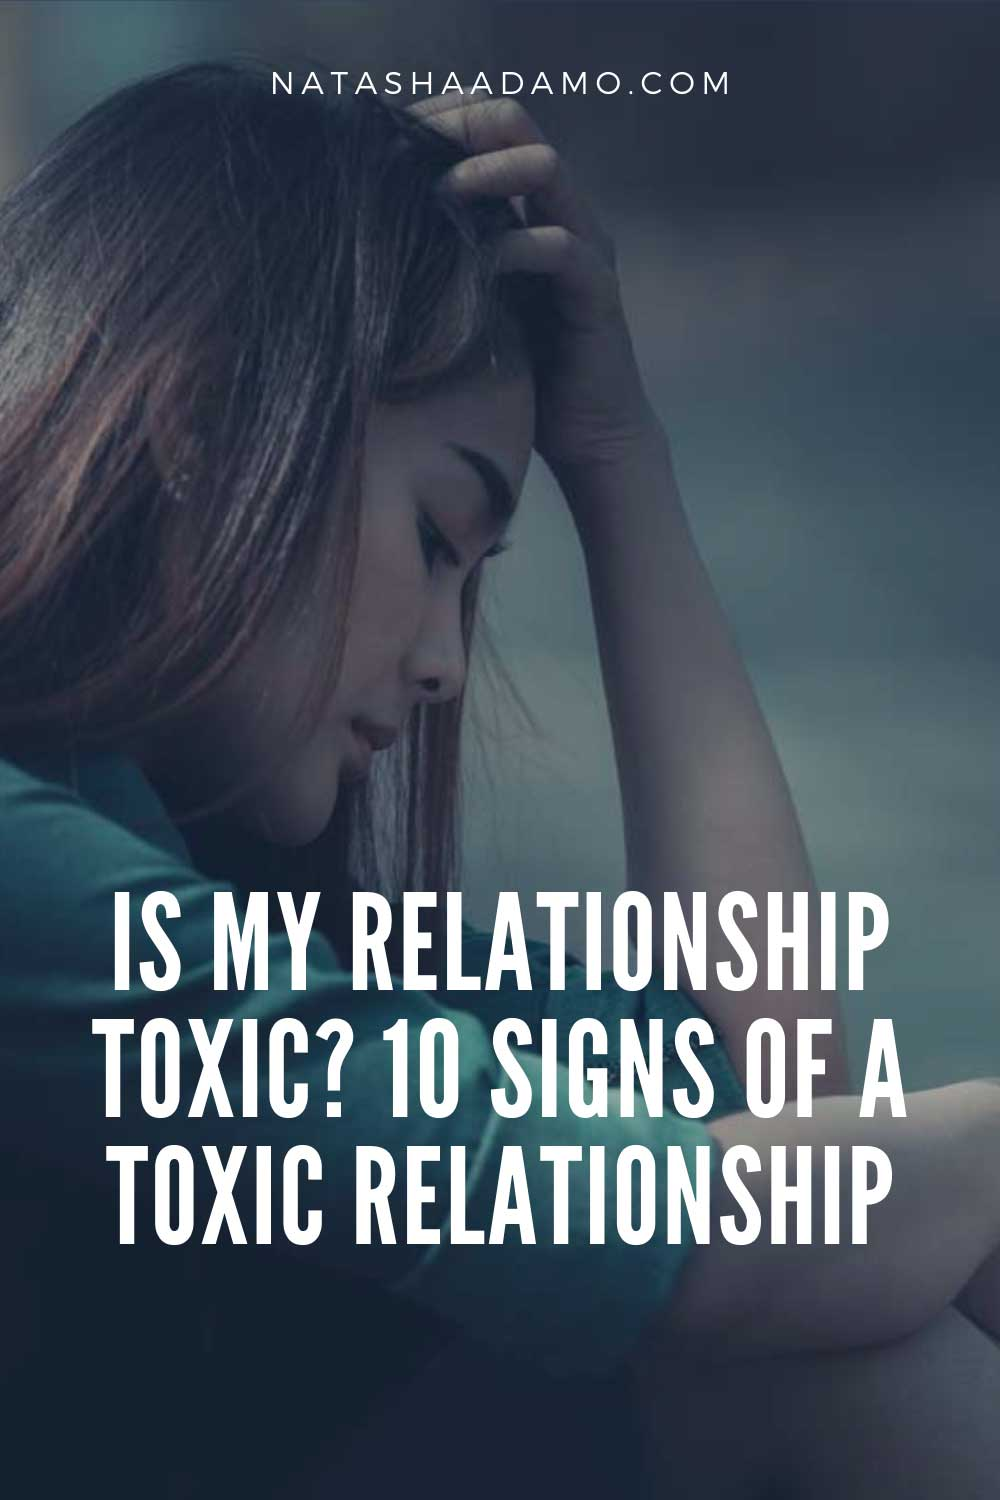 IS MY RELATIONSHIP TOXIC? 10 SIGNS OF A TOXIC RELATIONSHIP